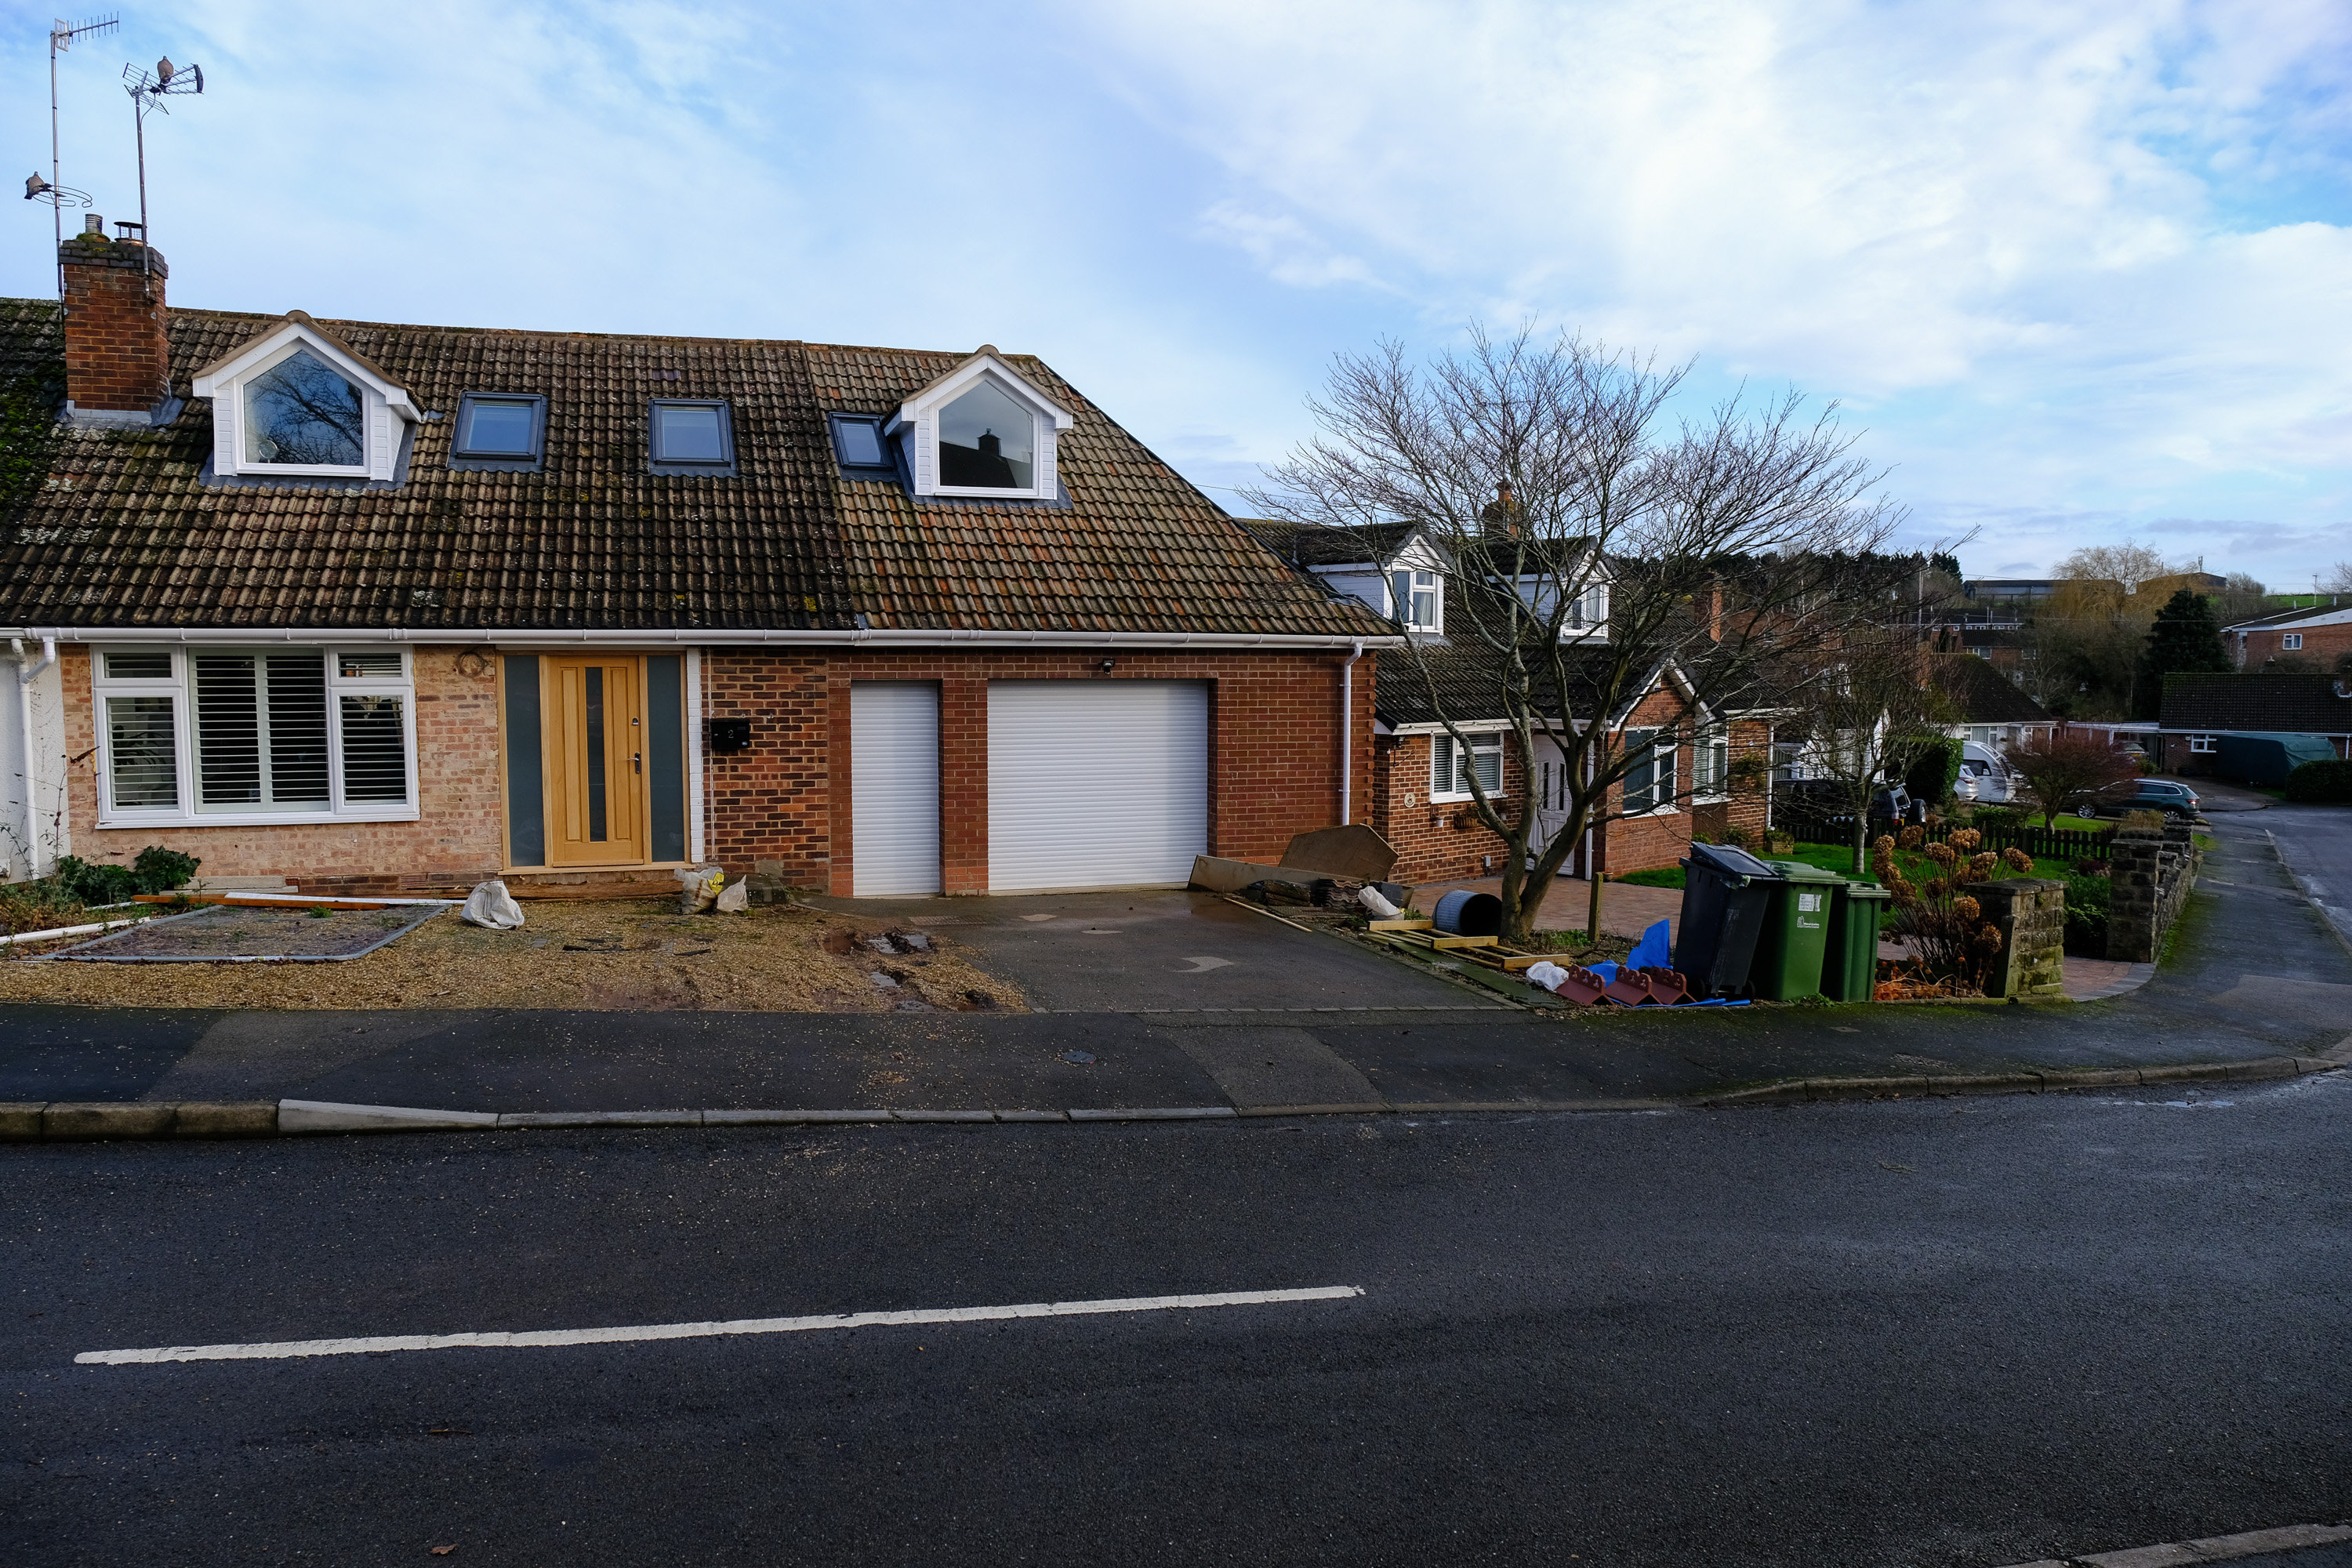 A general view of the home of Mr and Mrs Hyam in Cubbington Warwickshire, which councillors say will have to have it's newly built extension roof re-built due to it being 5 inches too high. (SWNS)